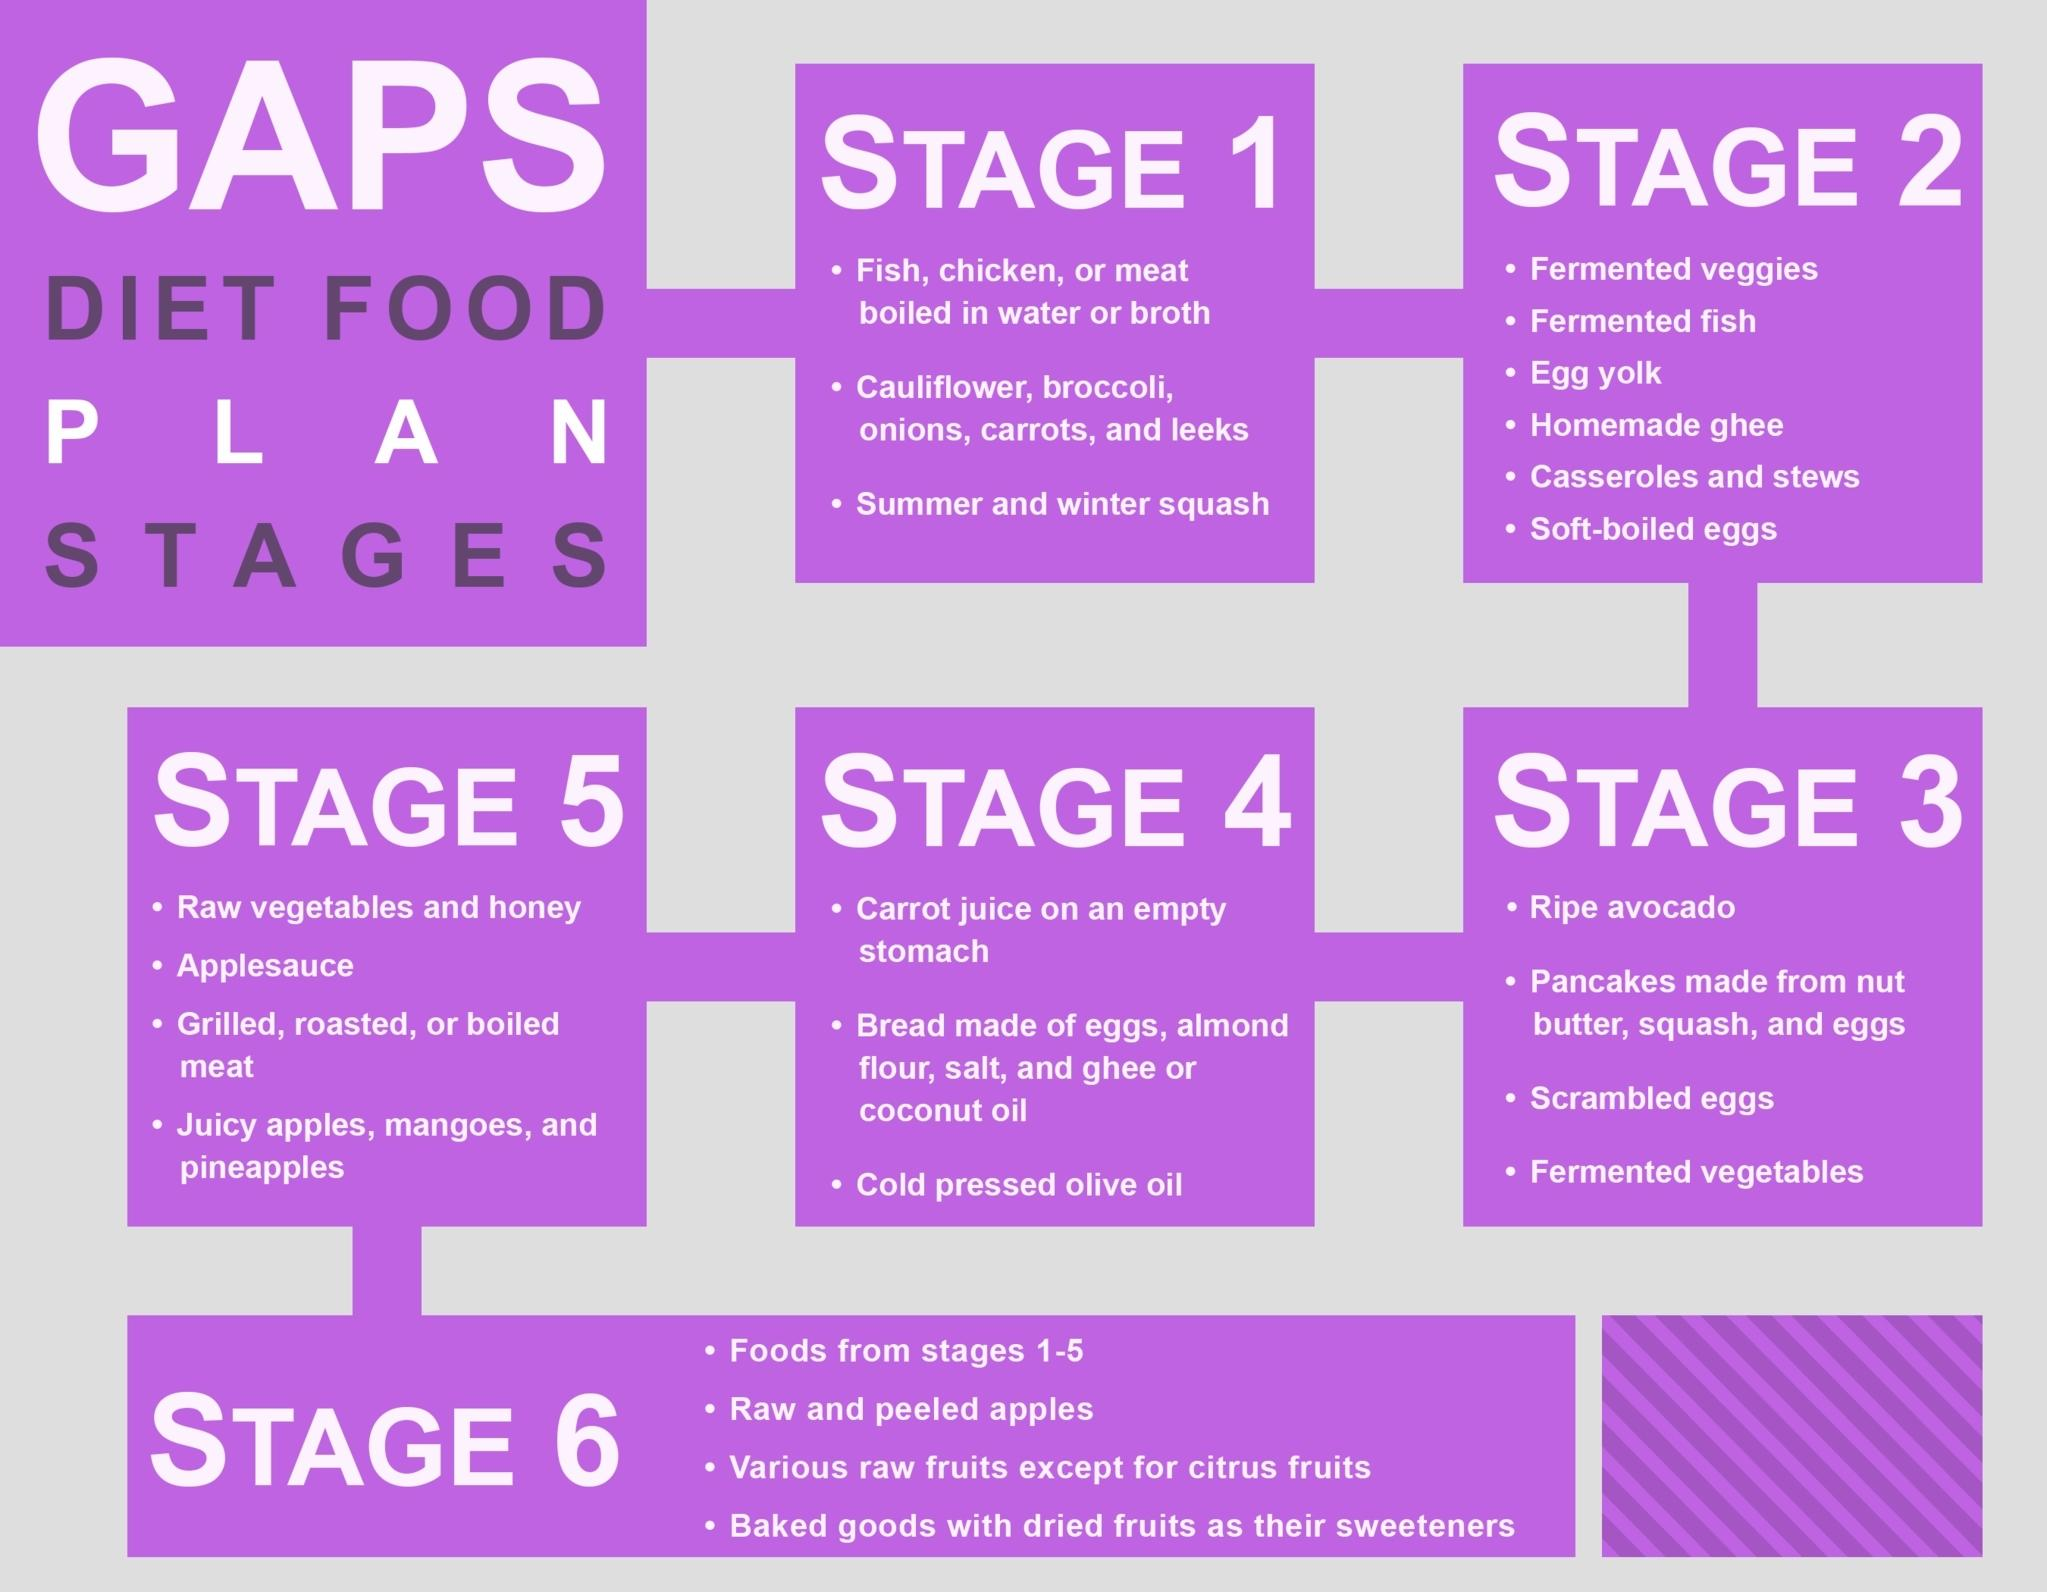 Gaps Diet Food